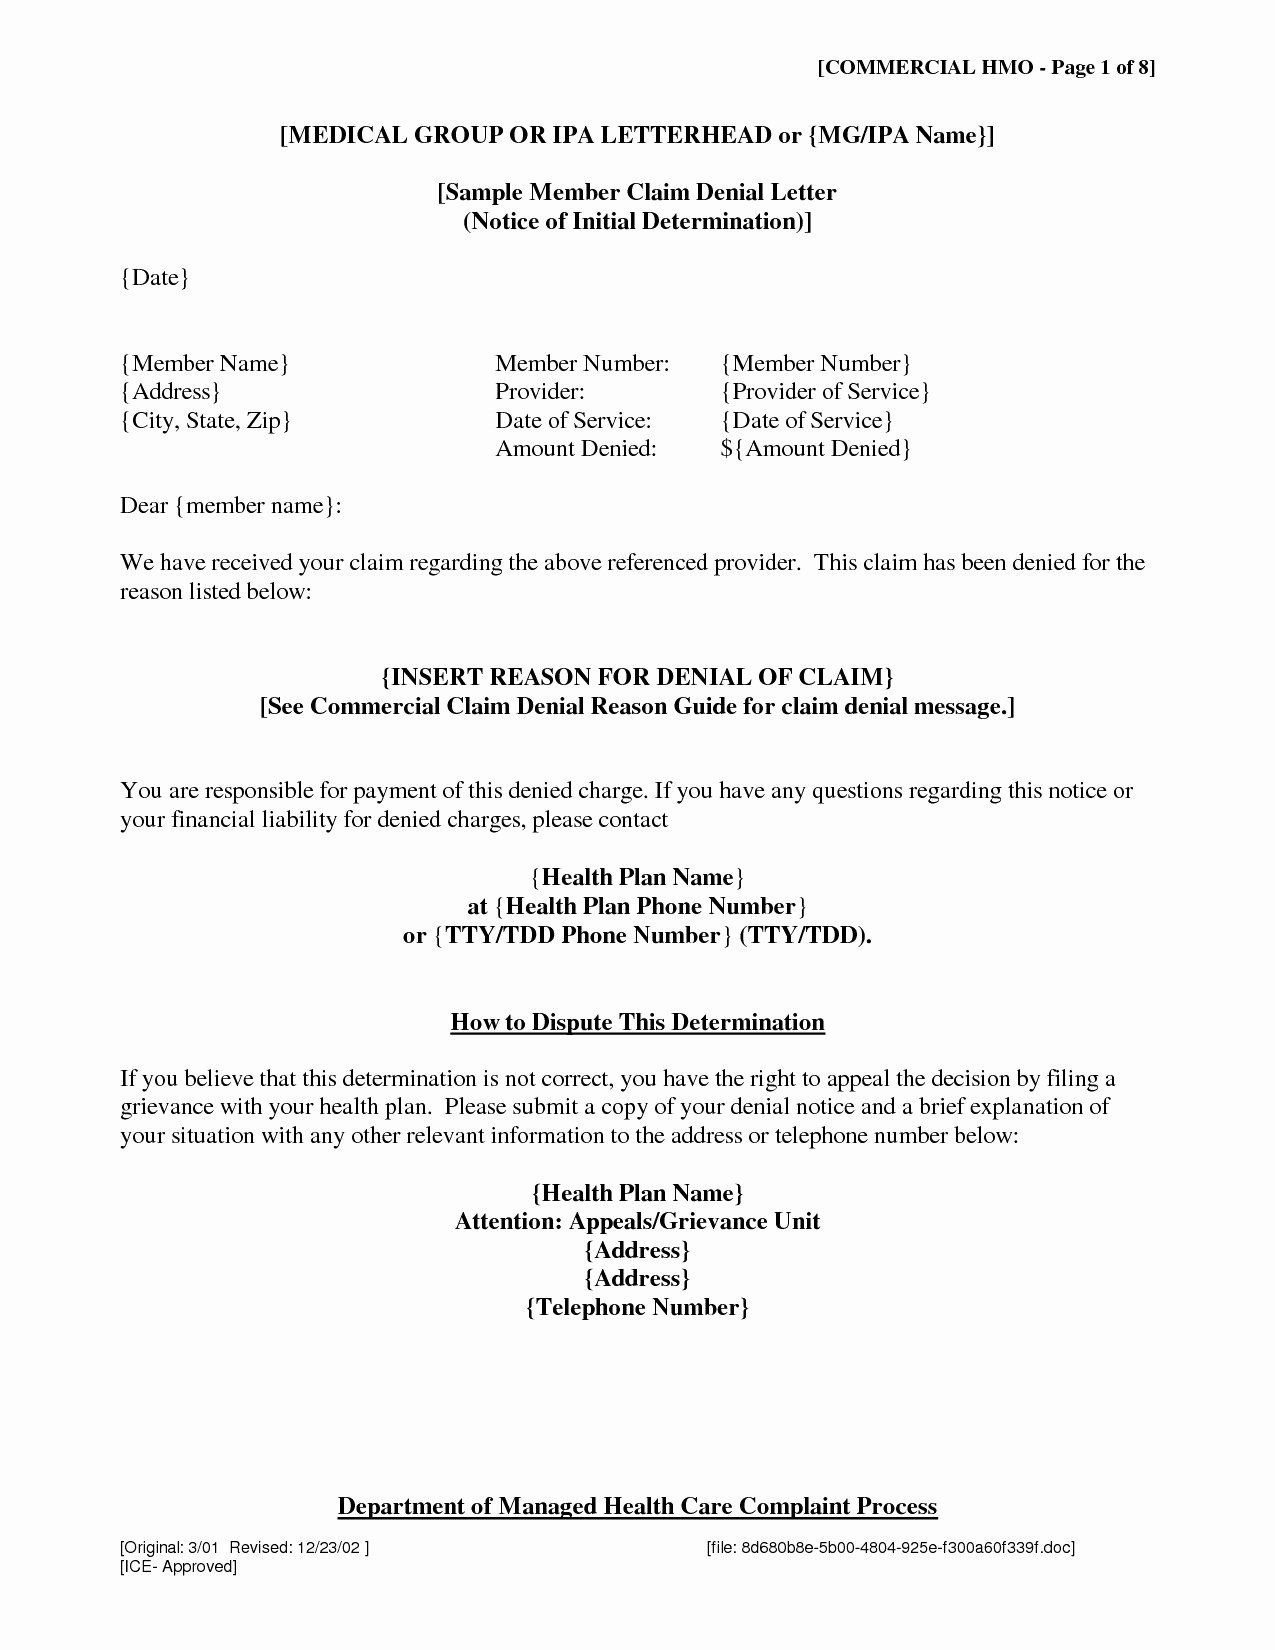 Claim Denial Letter Template Luxury Claim Denial Letter Template Examples